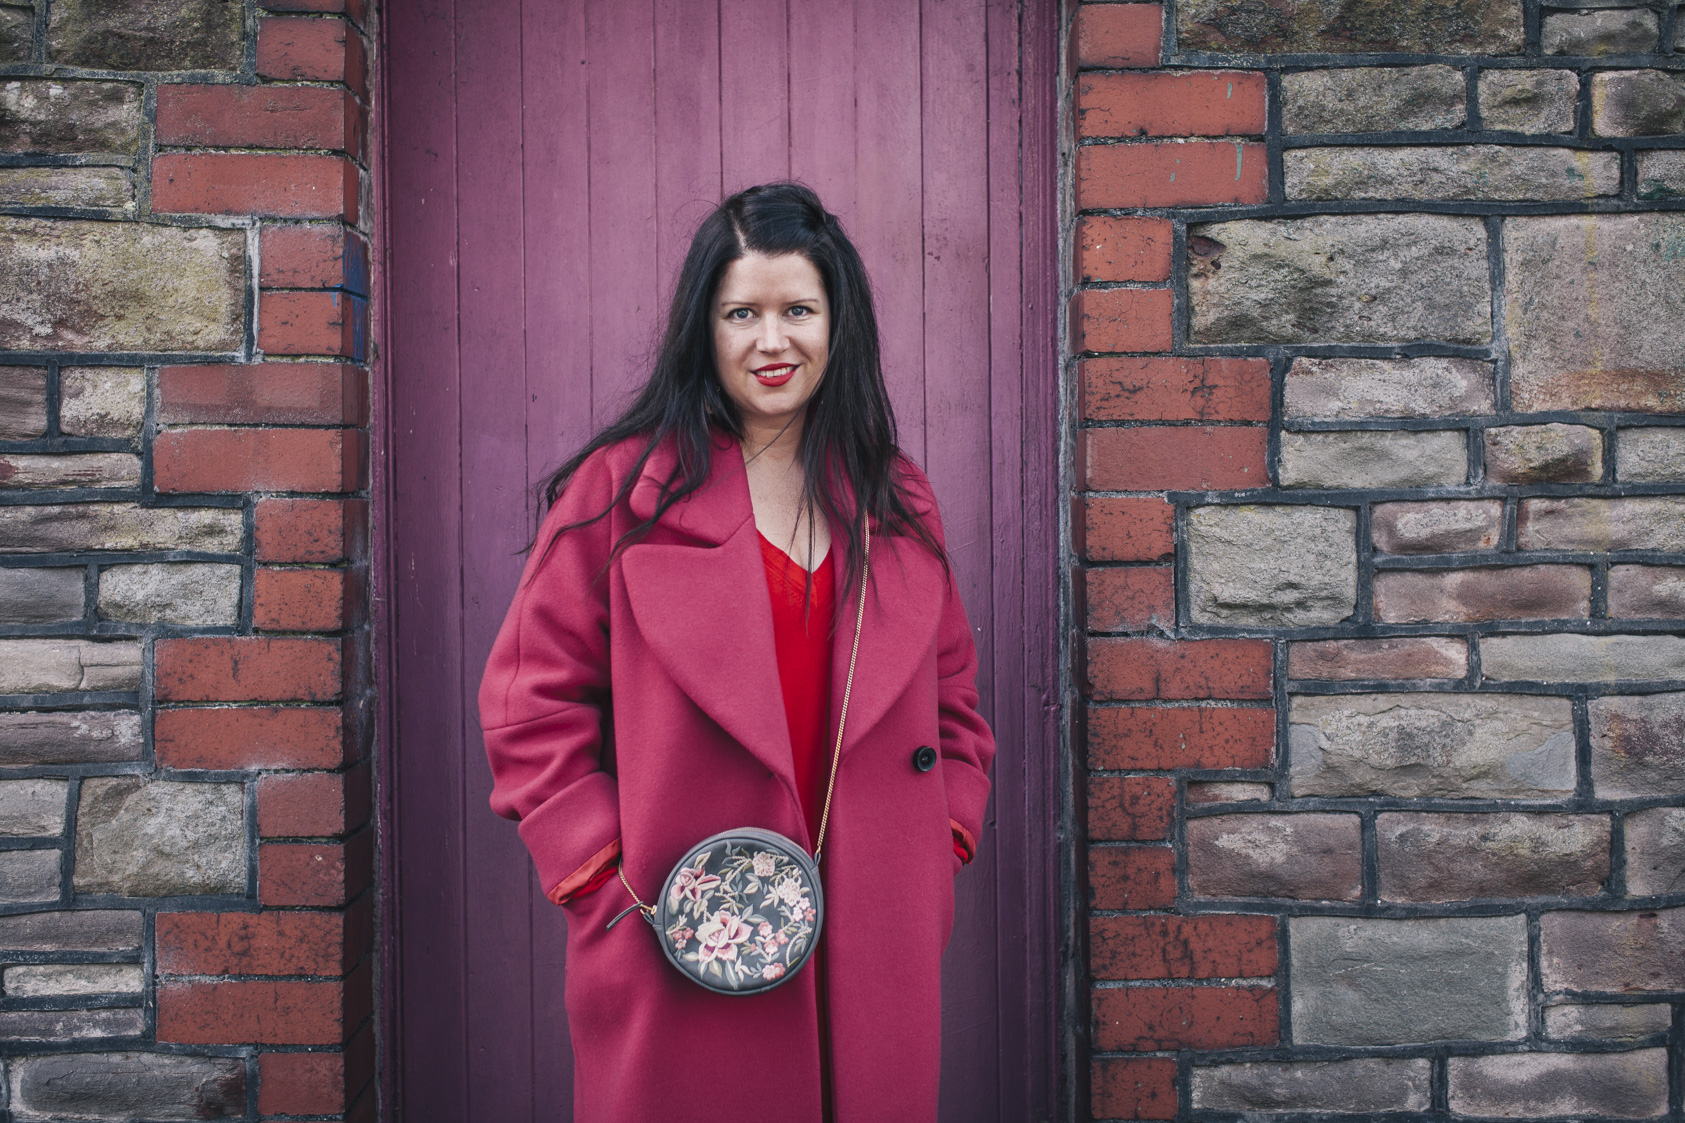 Coat by Jigsaw. Bag by Accessorize. Dress by Boden.